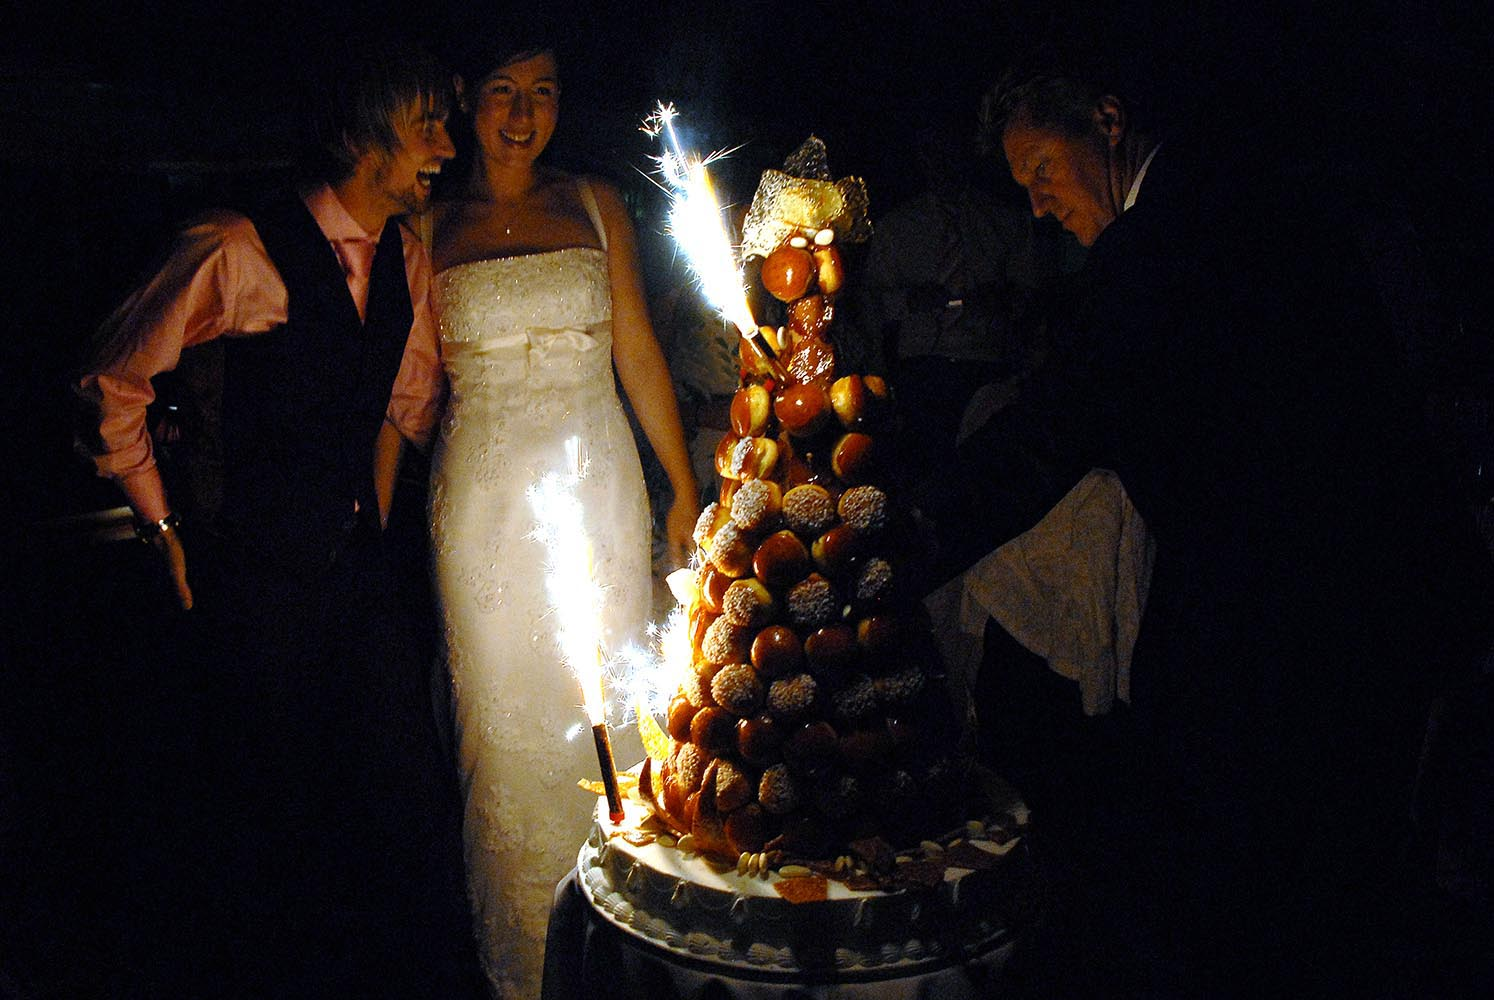 Bride and groom enjoying wedding cake